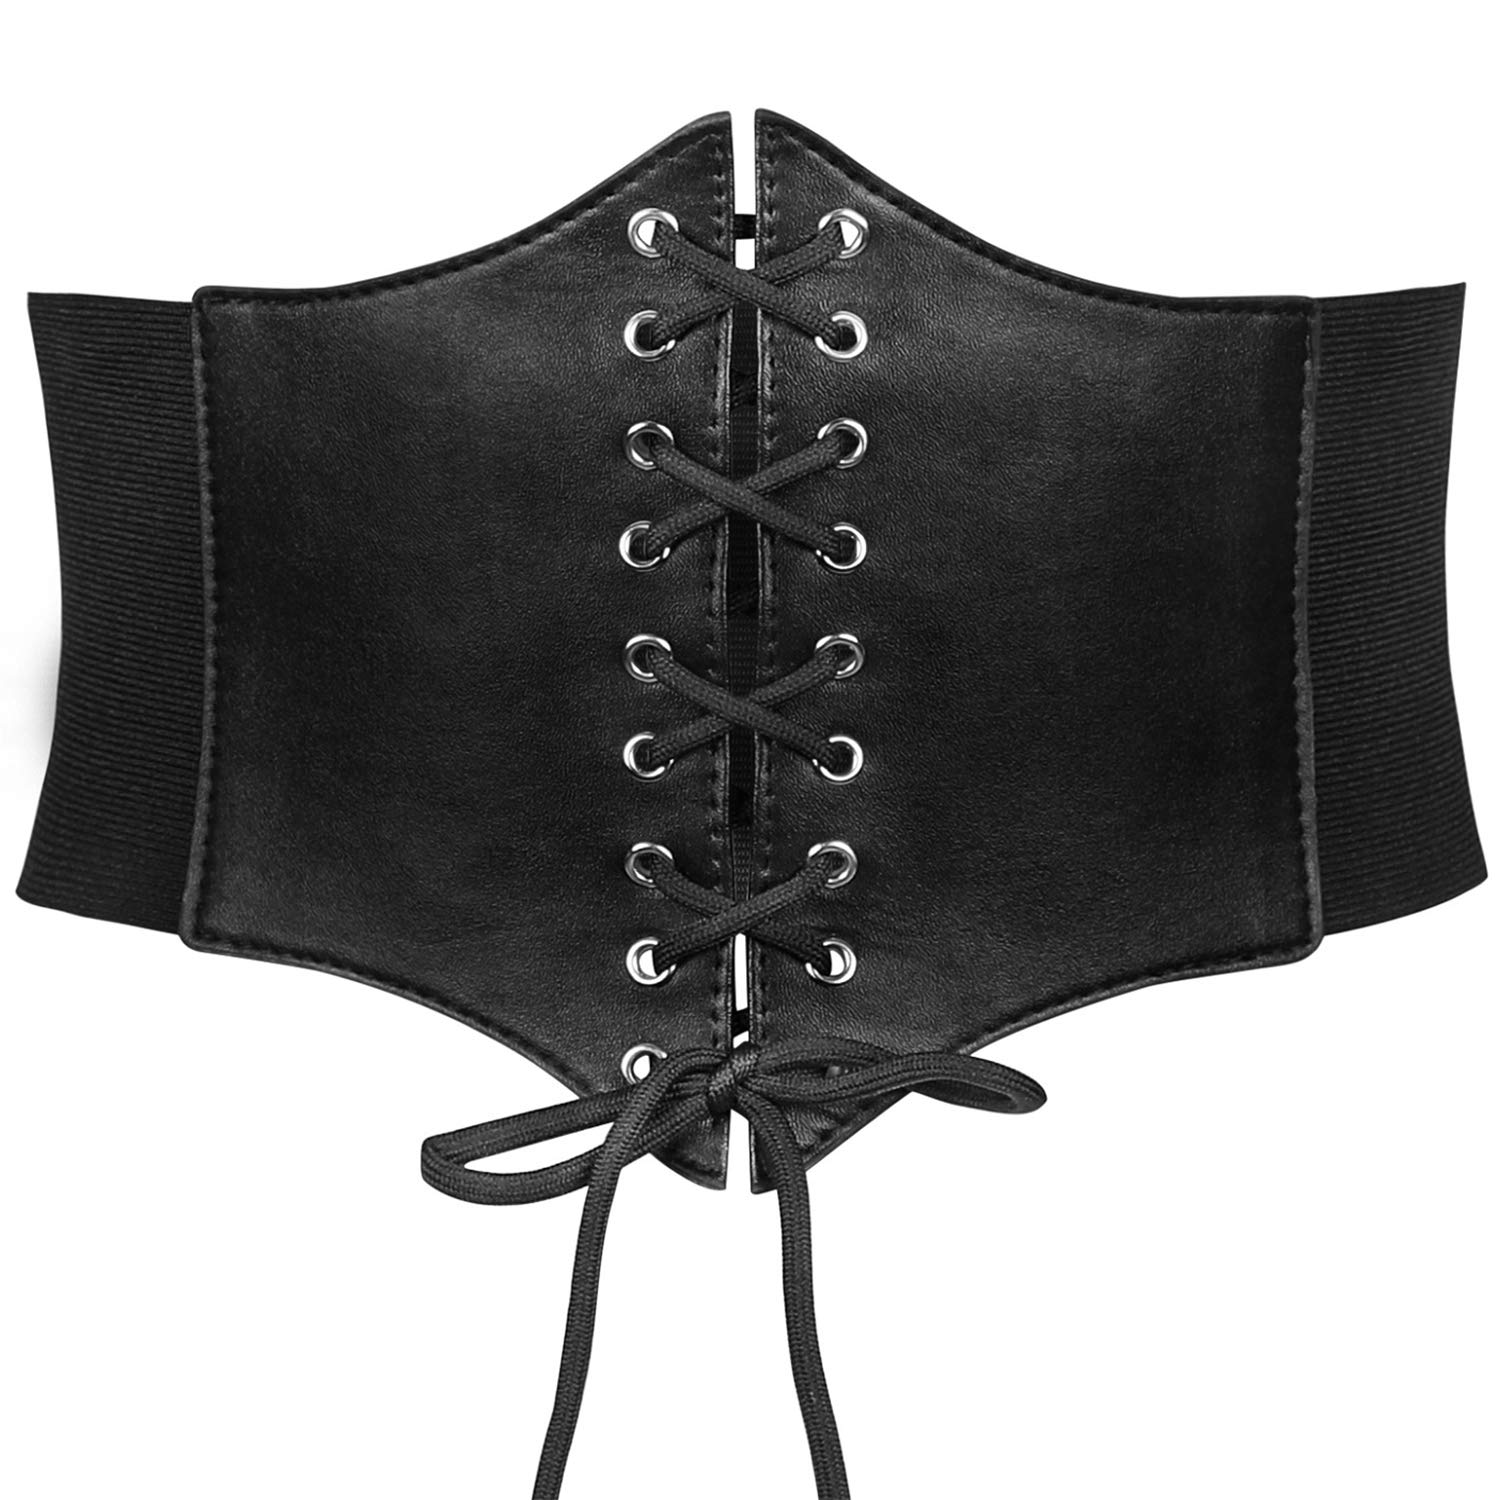 Women's Elastic Costume Waist Belt Lace-up Tied Waspie Corset Belts for Women by JasGood Christmas Gift